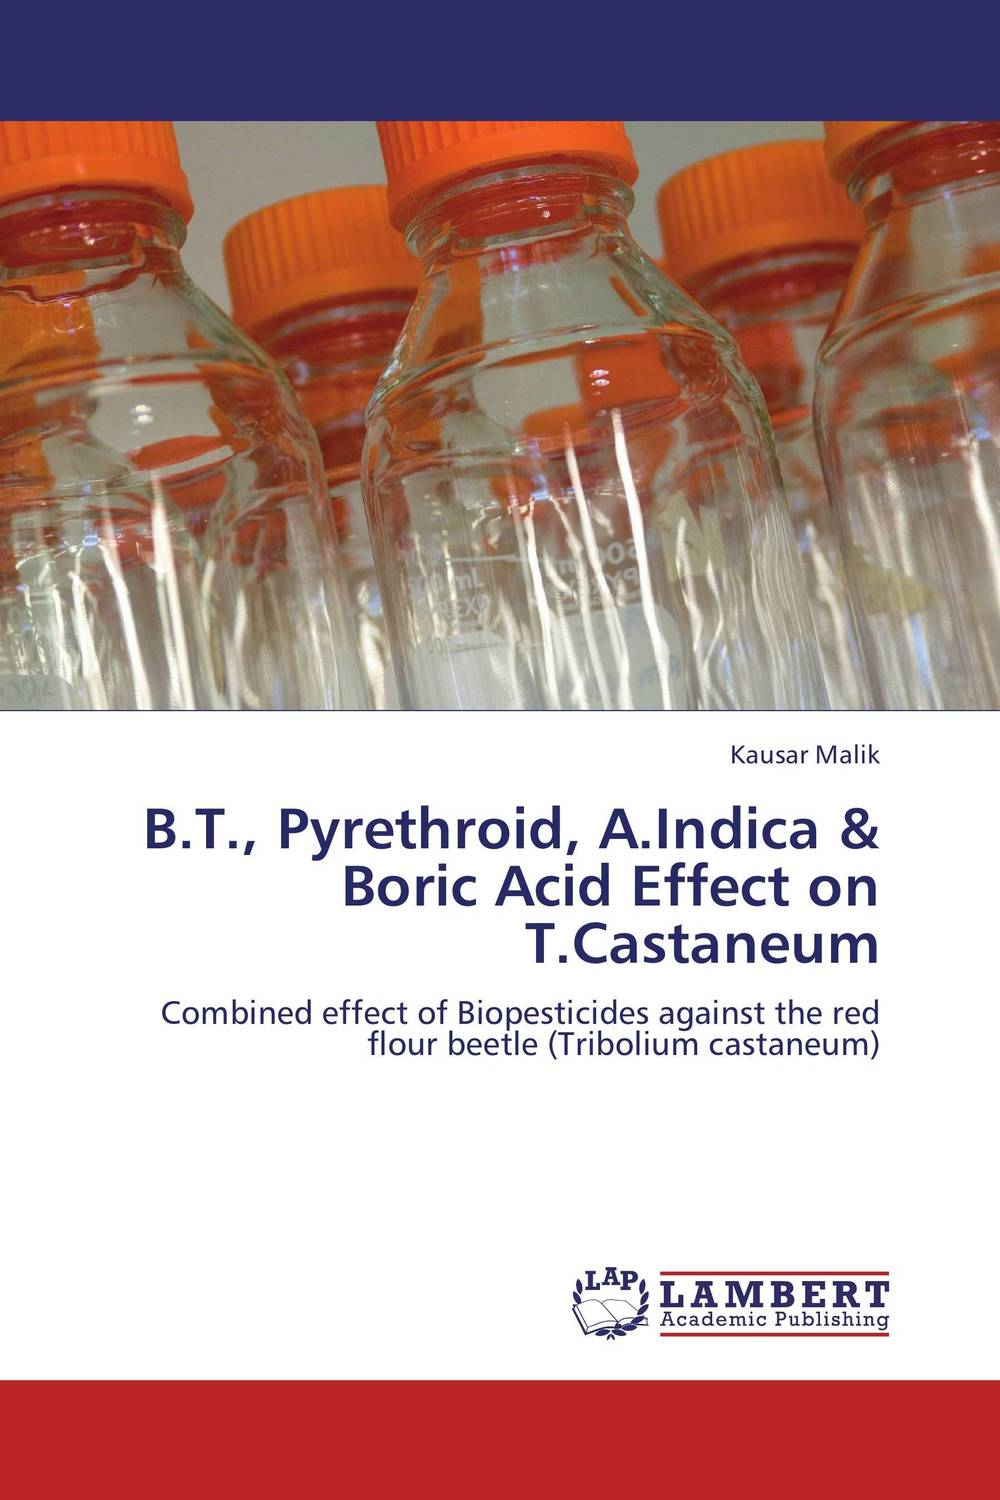 B.T., Pyrethroid, A.Indica & Boric Acid Effect on T.Castaneum combined effect of bio pesticides on red flour beetle